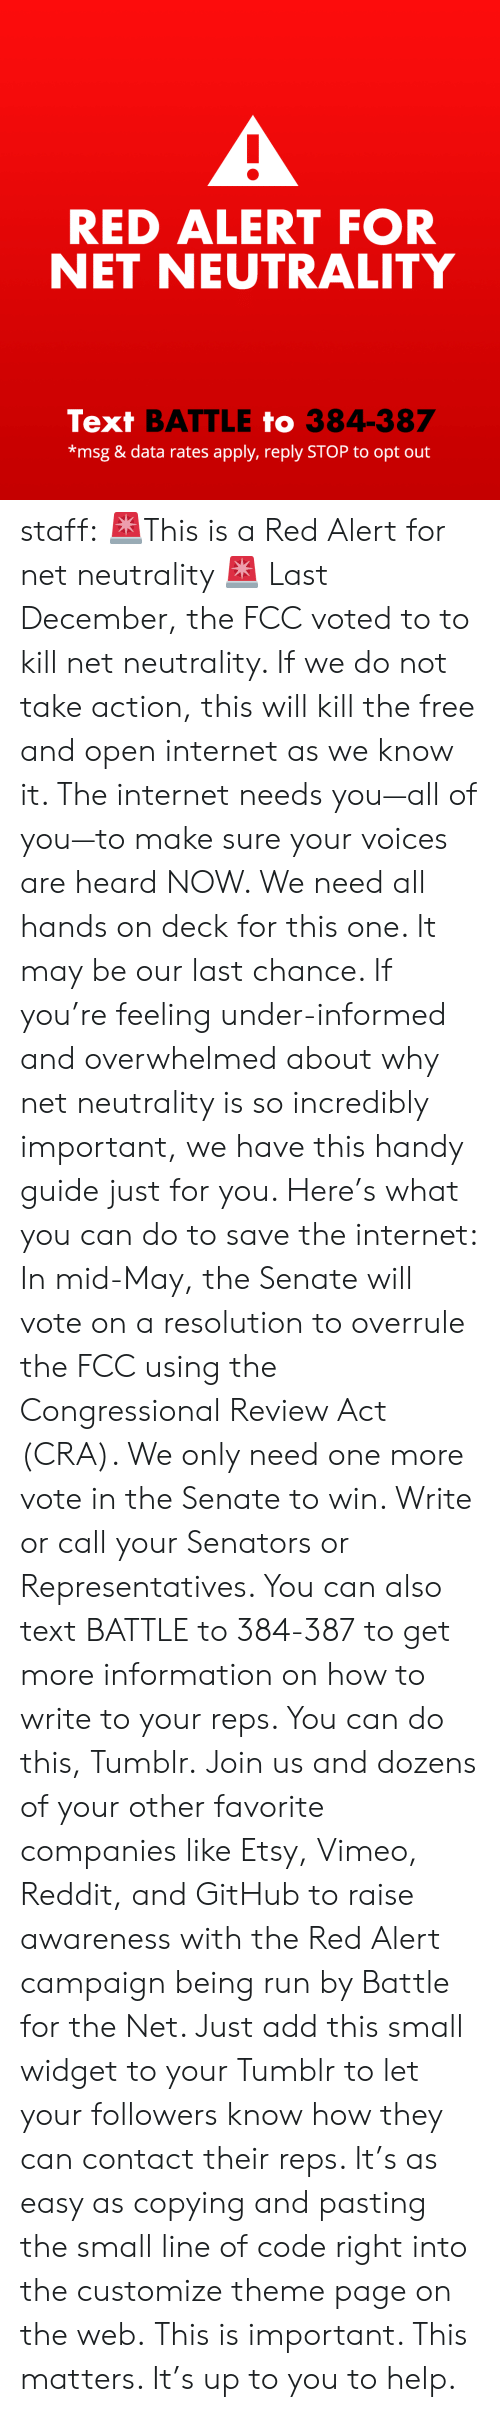 Internet, Reddit, and Run: RED ALERT FOR  NET NEUTRALITY  Text BATTLE to 384-387  *msg & data rates apply, reply STOP to opt out staff: 🚨This is a Red Alert for net neutrality 🚨 Last December, the FCC voted to to kill net neutrality. If we do not take action, this will kill the free and open internet as we know it. The internet needs you—all of you—to make sure your voices are heard NOW.  We need all hands on deck for this one. It may be our last chance. If you're feeling under-informed and overwhelmed about why net neutrality is so incredibly important, we have this handy guide just for you.  Here's what you can do to save the internet: In mid-May, the Senate will vote on a resolution to overrule the FCC using the Congressional Review Act (CRA). We only need one more vote in the Senate to win. Write or call your Senators or Representatives. You can also text BATTLE to 384-387 to get more information on how to write to your reps. You can do this, Tumblr. Join us and dozens of your other favorite companies like Etsy, Vimeo, Reddit, and GitHub to raise awareness with the Red Alert campaign being run by Battle for the Net. Just add this small widget to your Tumblr to let your followers know how they can contact their reps. It's as easy as copying and pasting the small line of code right into the customize theme page on the web. This is important. This matters. It's up to you to help.